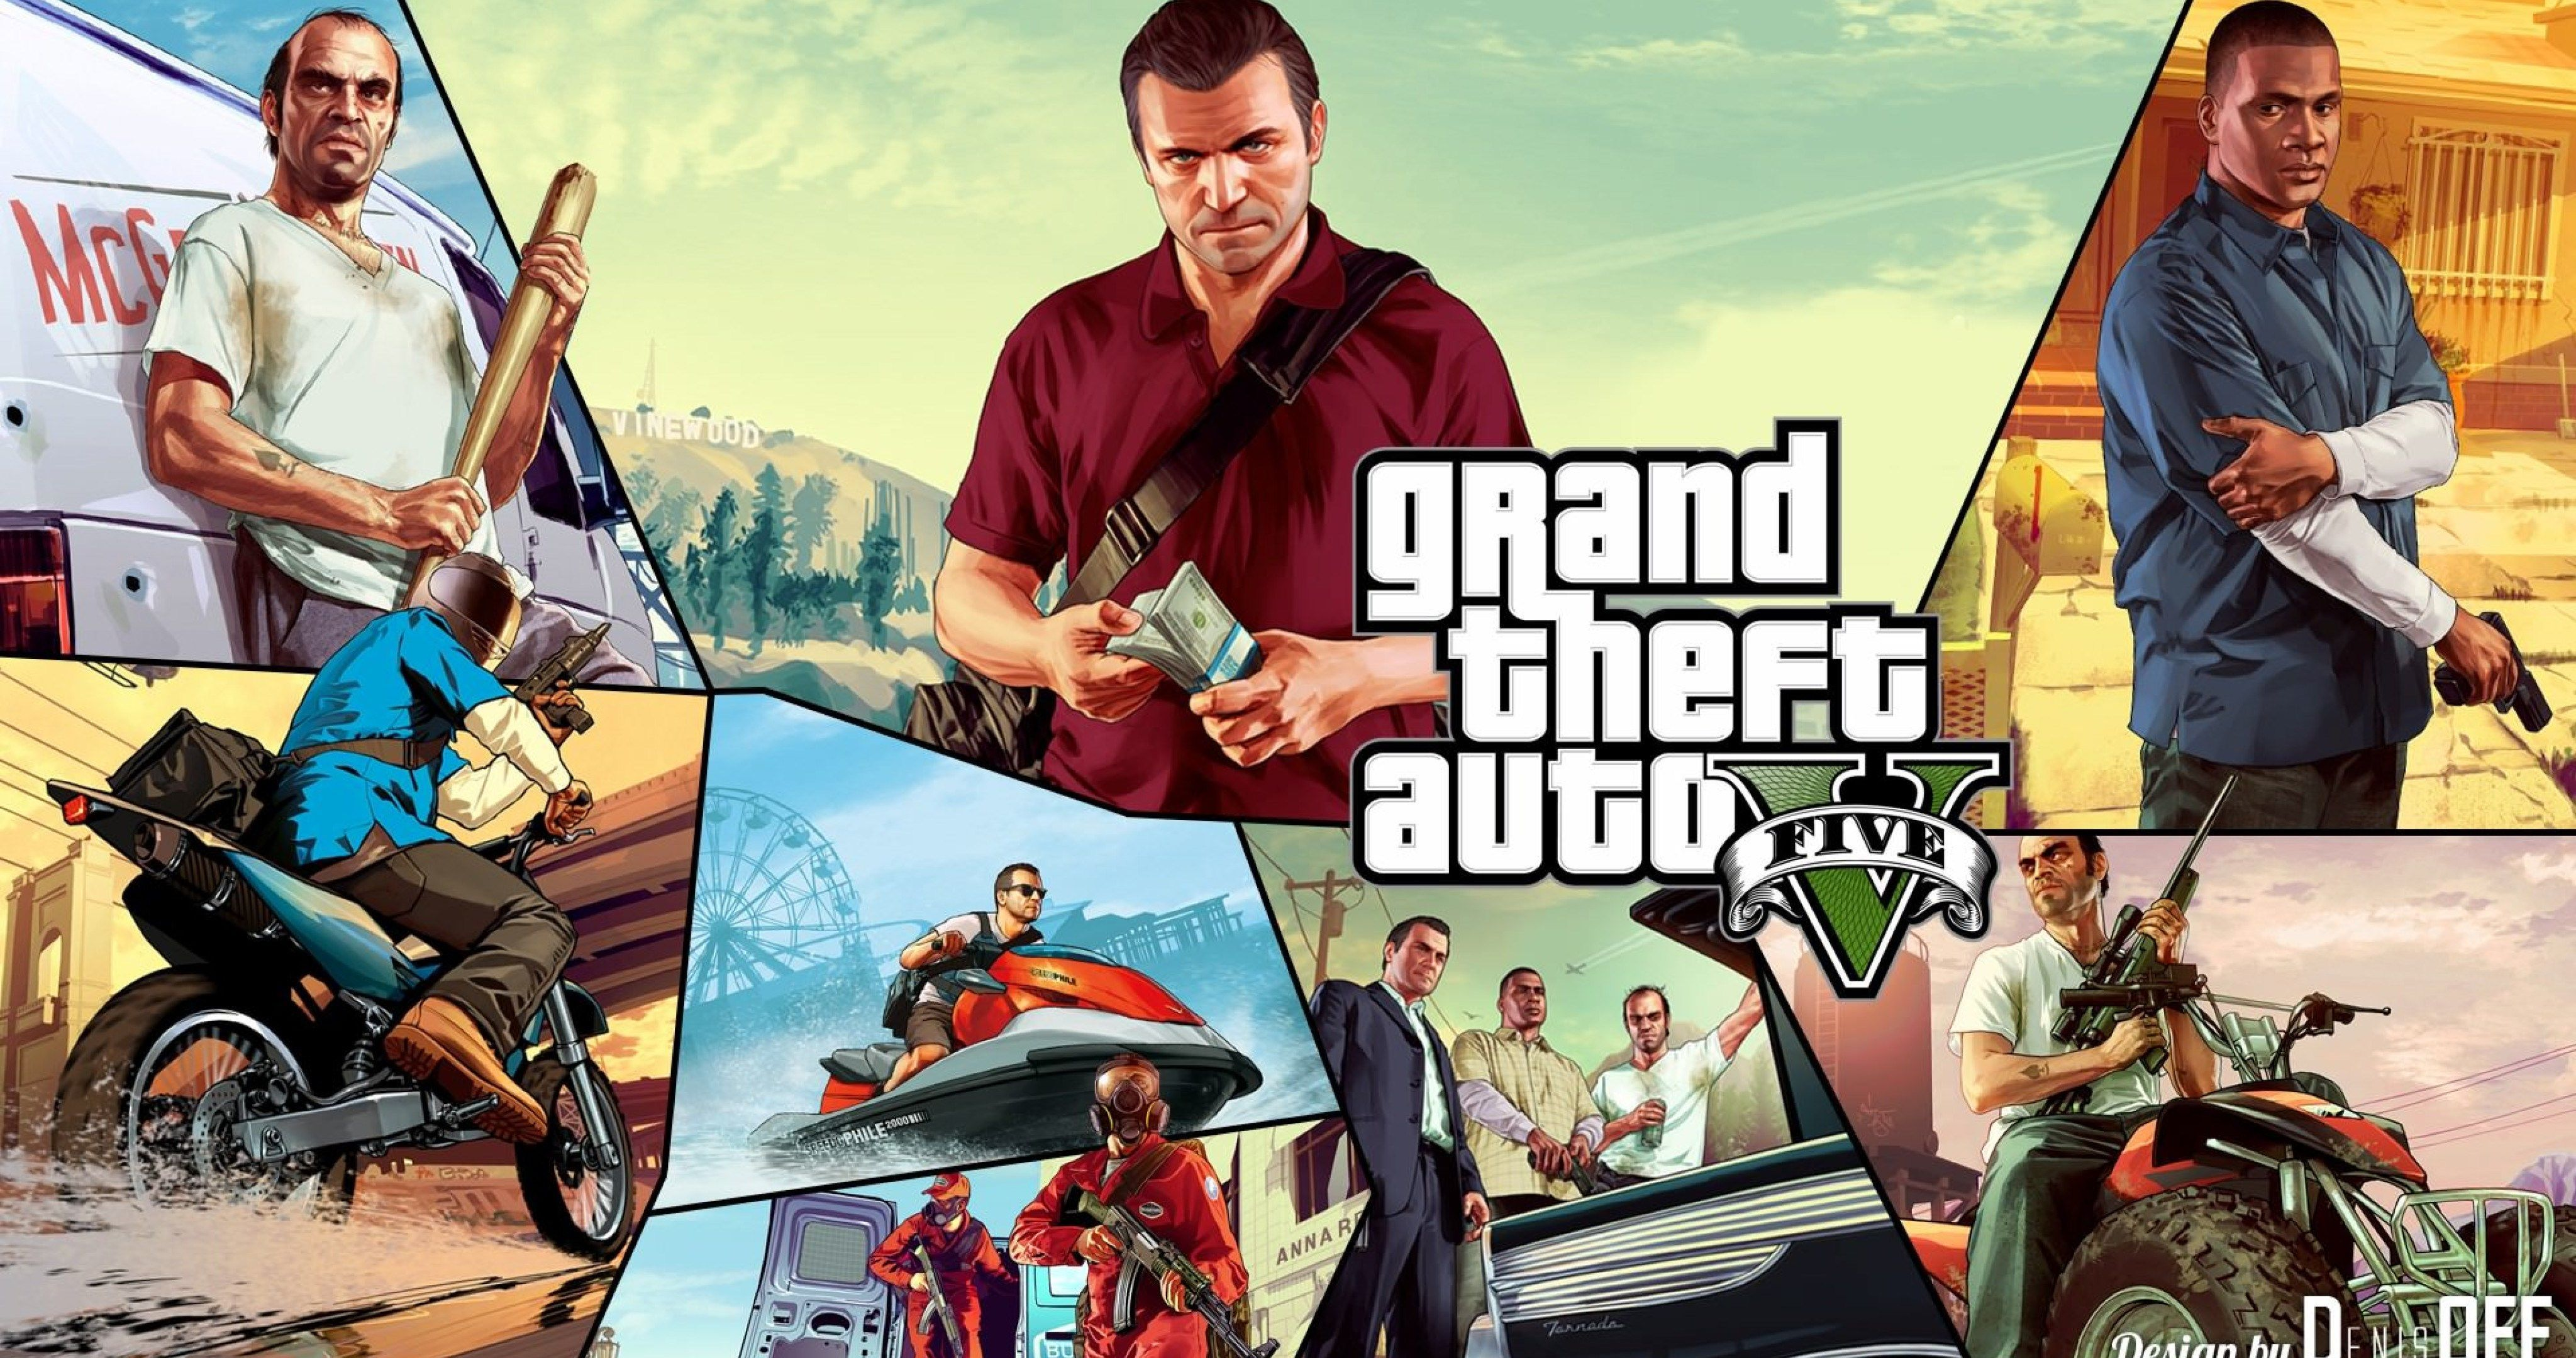 4k Gta 5 Wallpapers Top Free 4k Gta 5 Backgrounds Wallpaperaccess